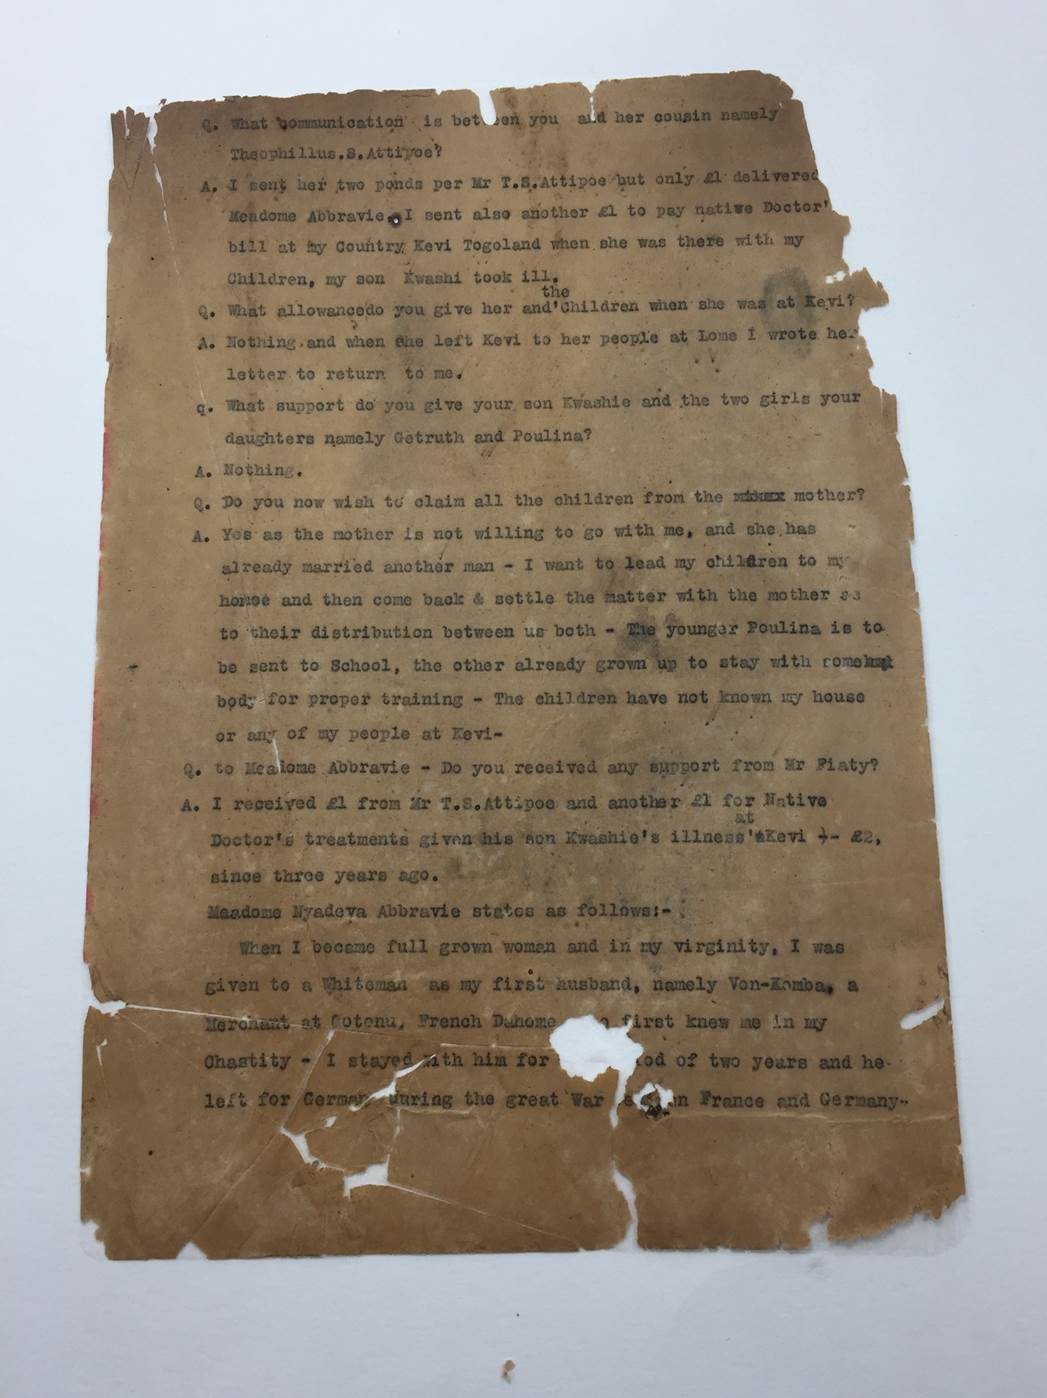 Document after consolidation